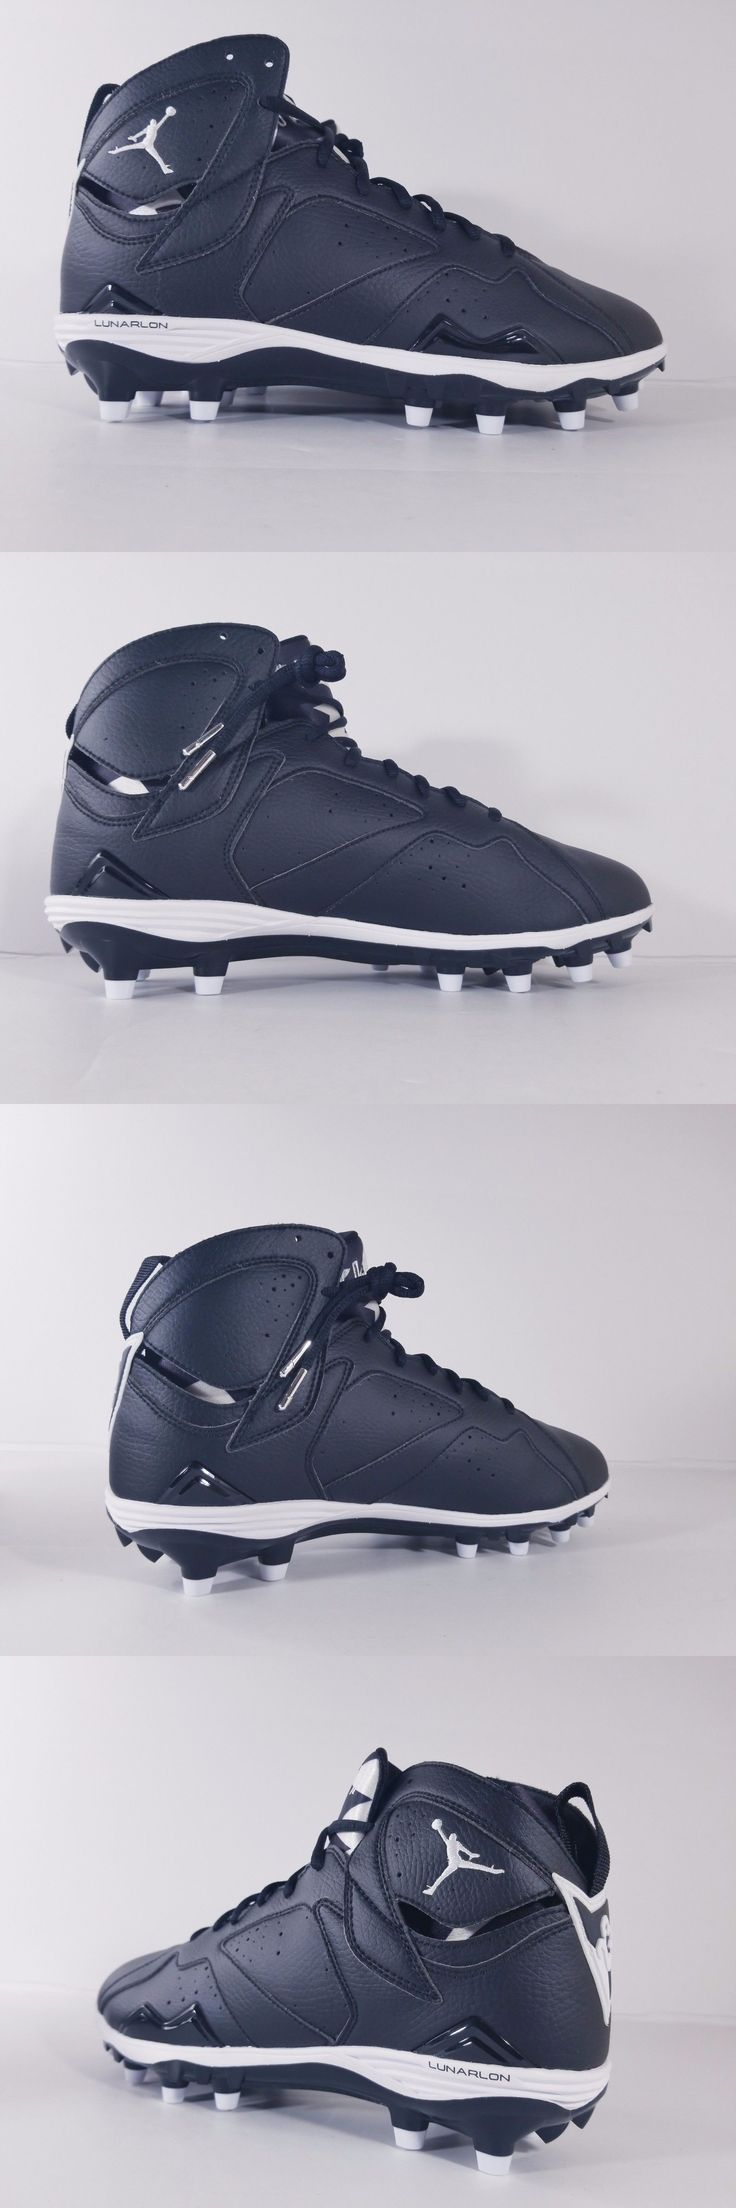 Men 159116: Nike Air Jordan Vii 7 Retro Td Football Cleats Black White Oreo Sz (719543-010) -> BUY IT NOW ONLY: $35.96 on eBay!